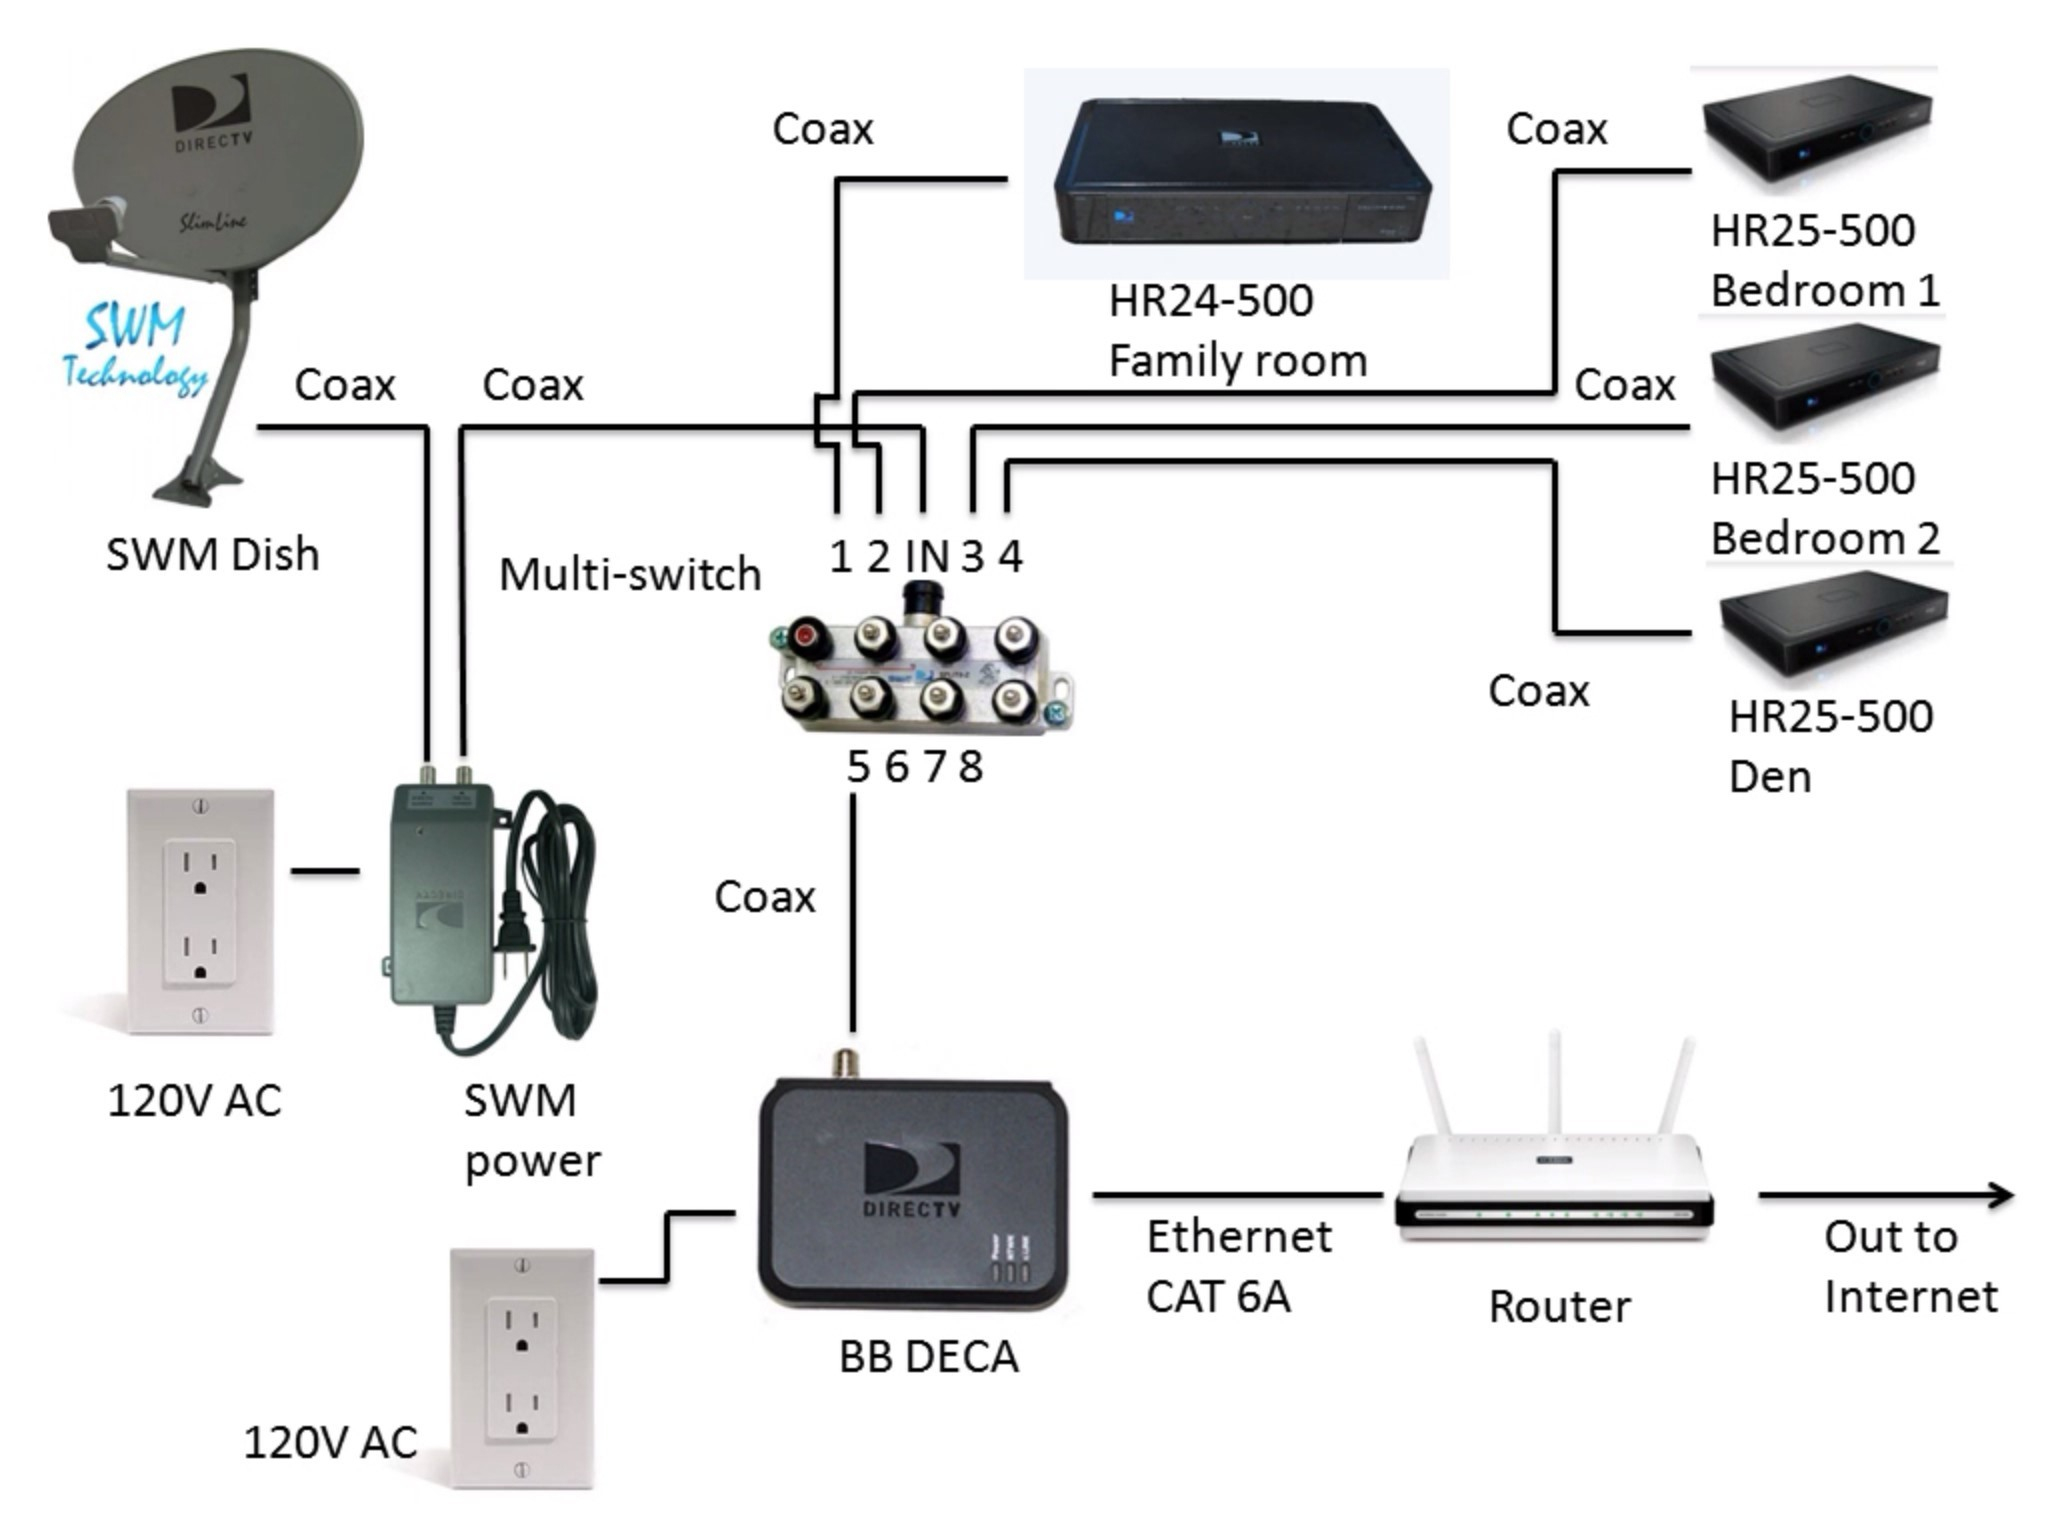 Cable Tv Wiring Diagram   Wiring Library - Rv Satellite Wiring Diagram